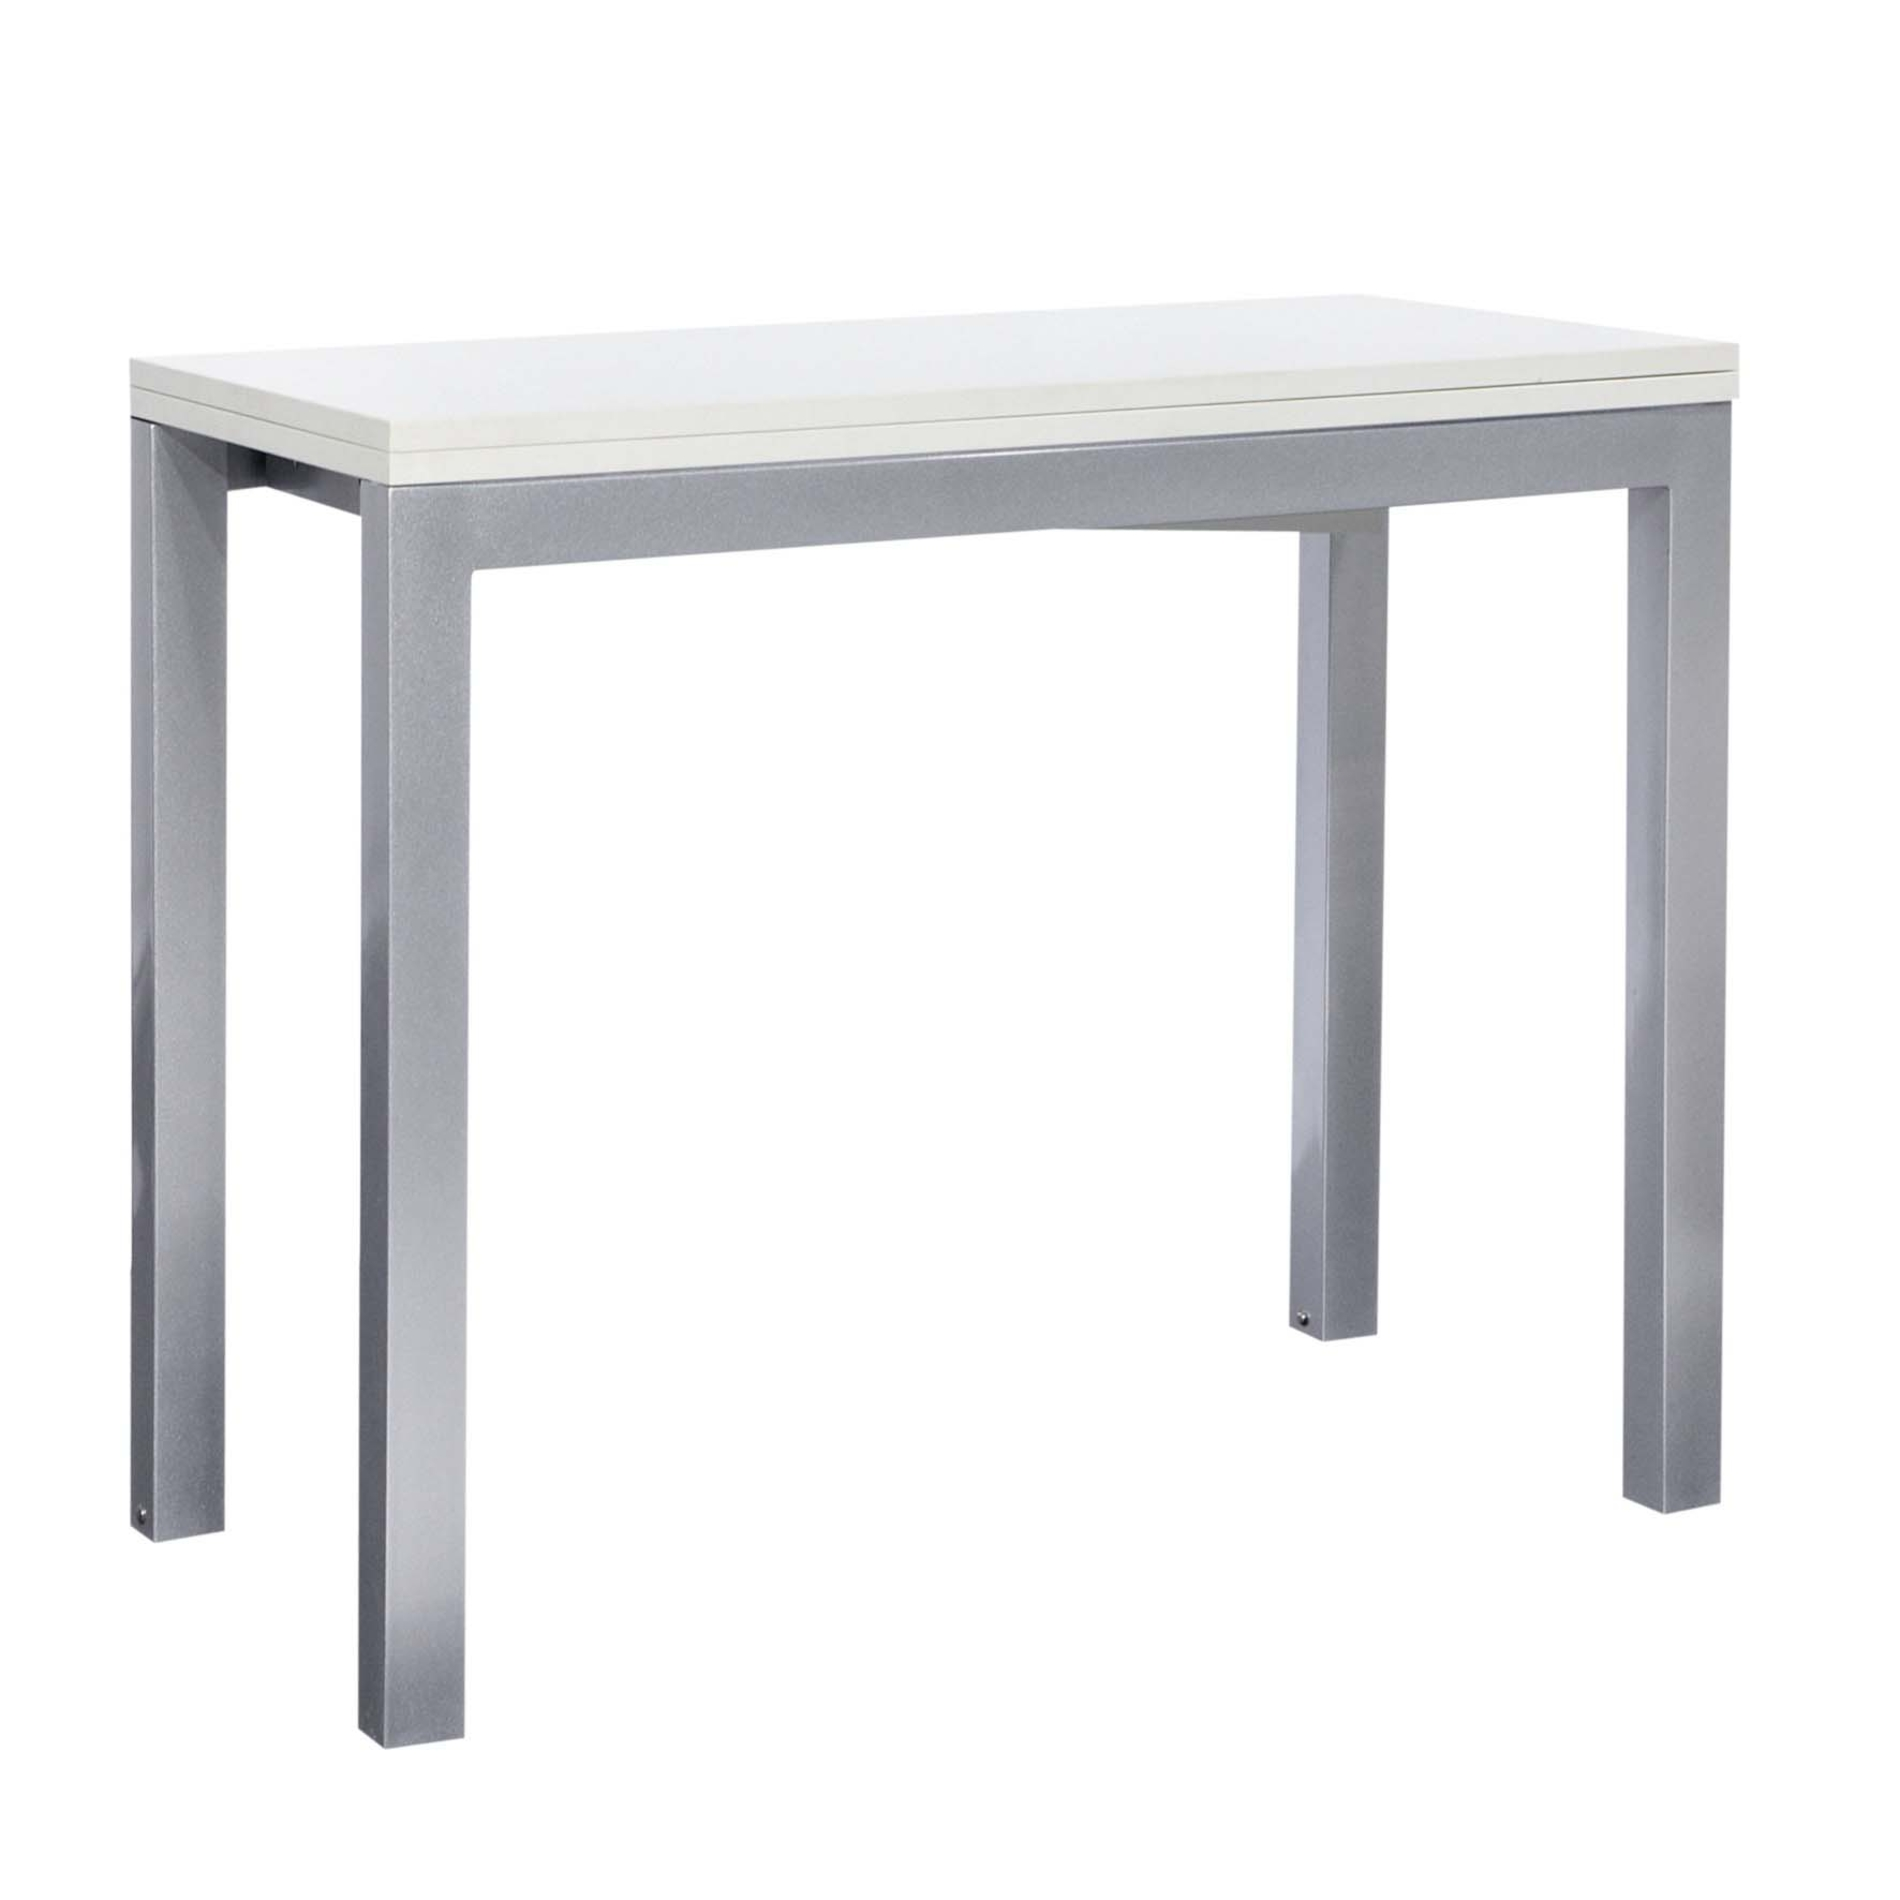 Console convertible table ikea maison design for Ikea table convertible